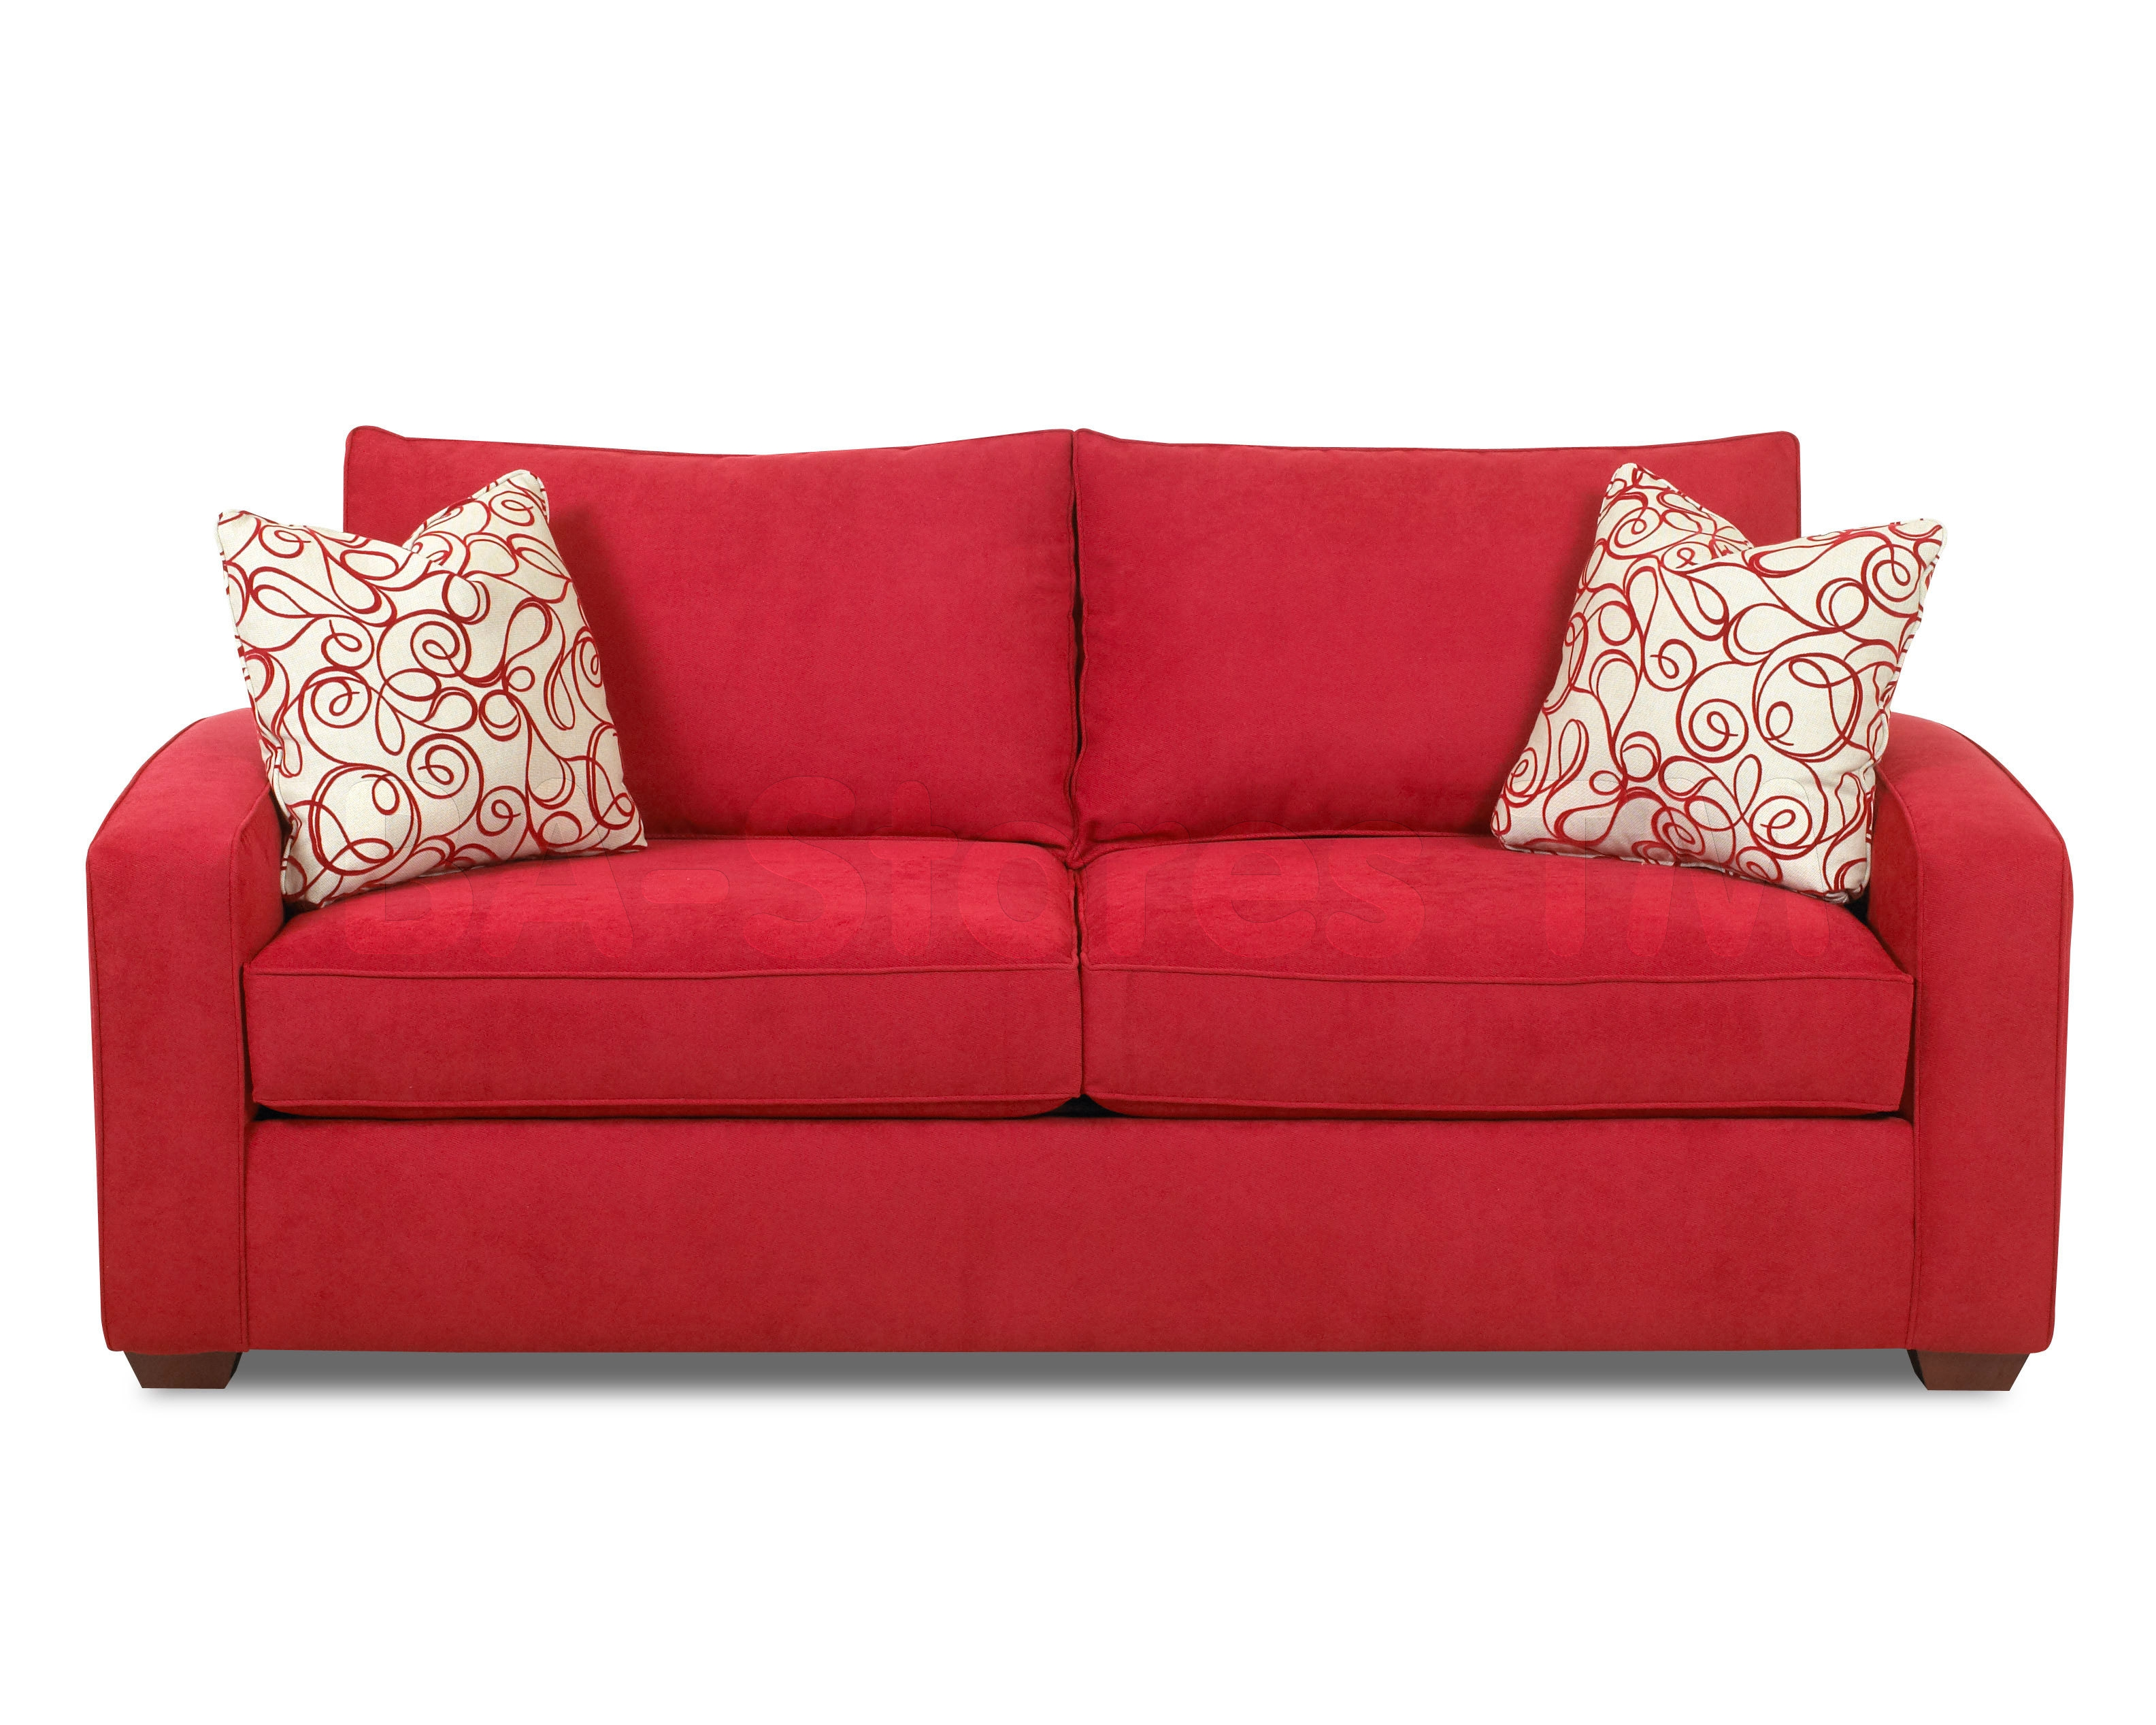 Sofa Furniture Best Sofas Ideas Sofascouch Regarding Red Sofa Chairs (Image 14 of 15)